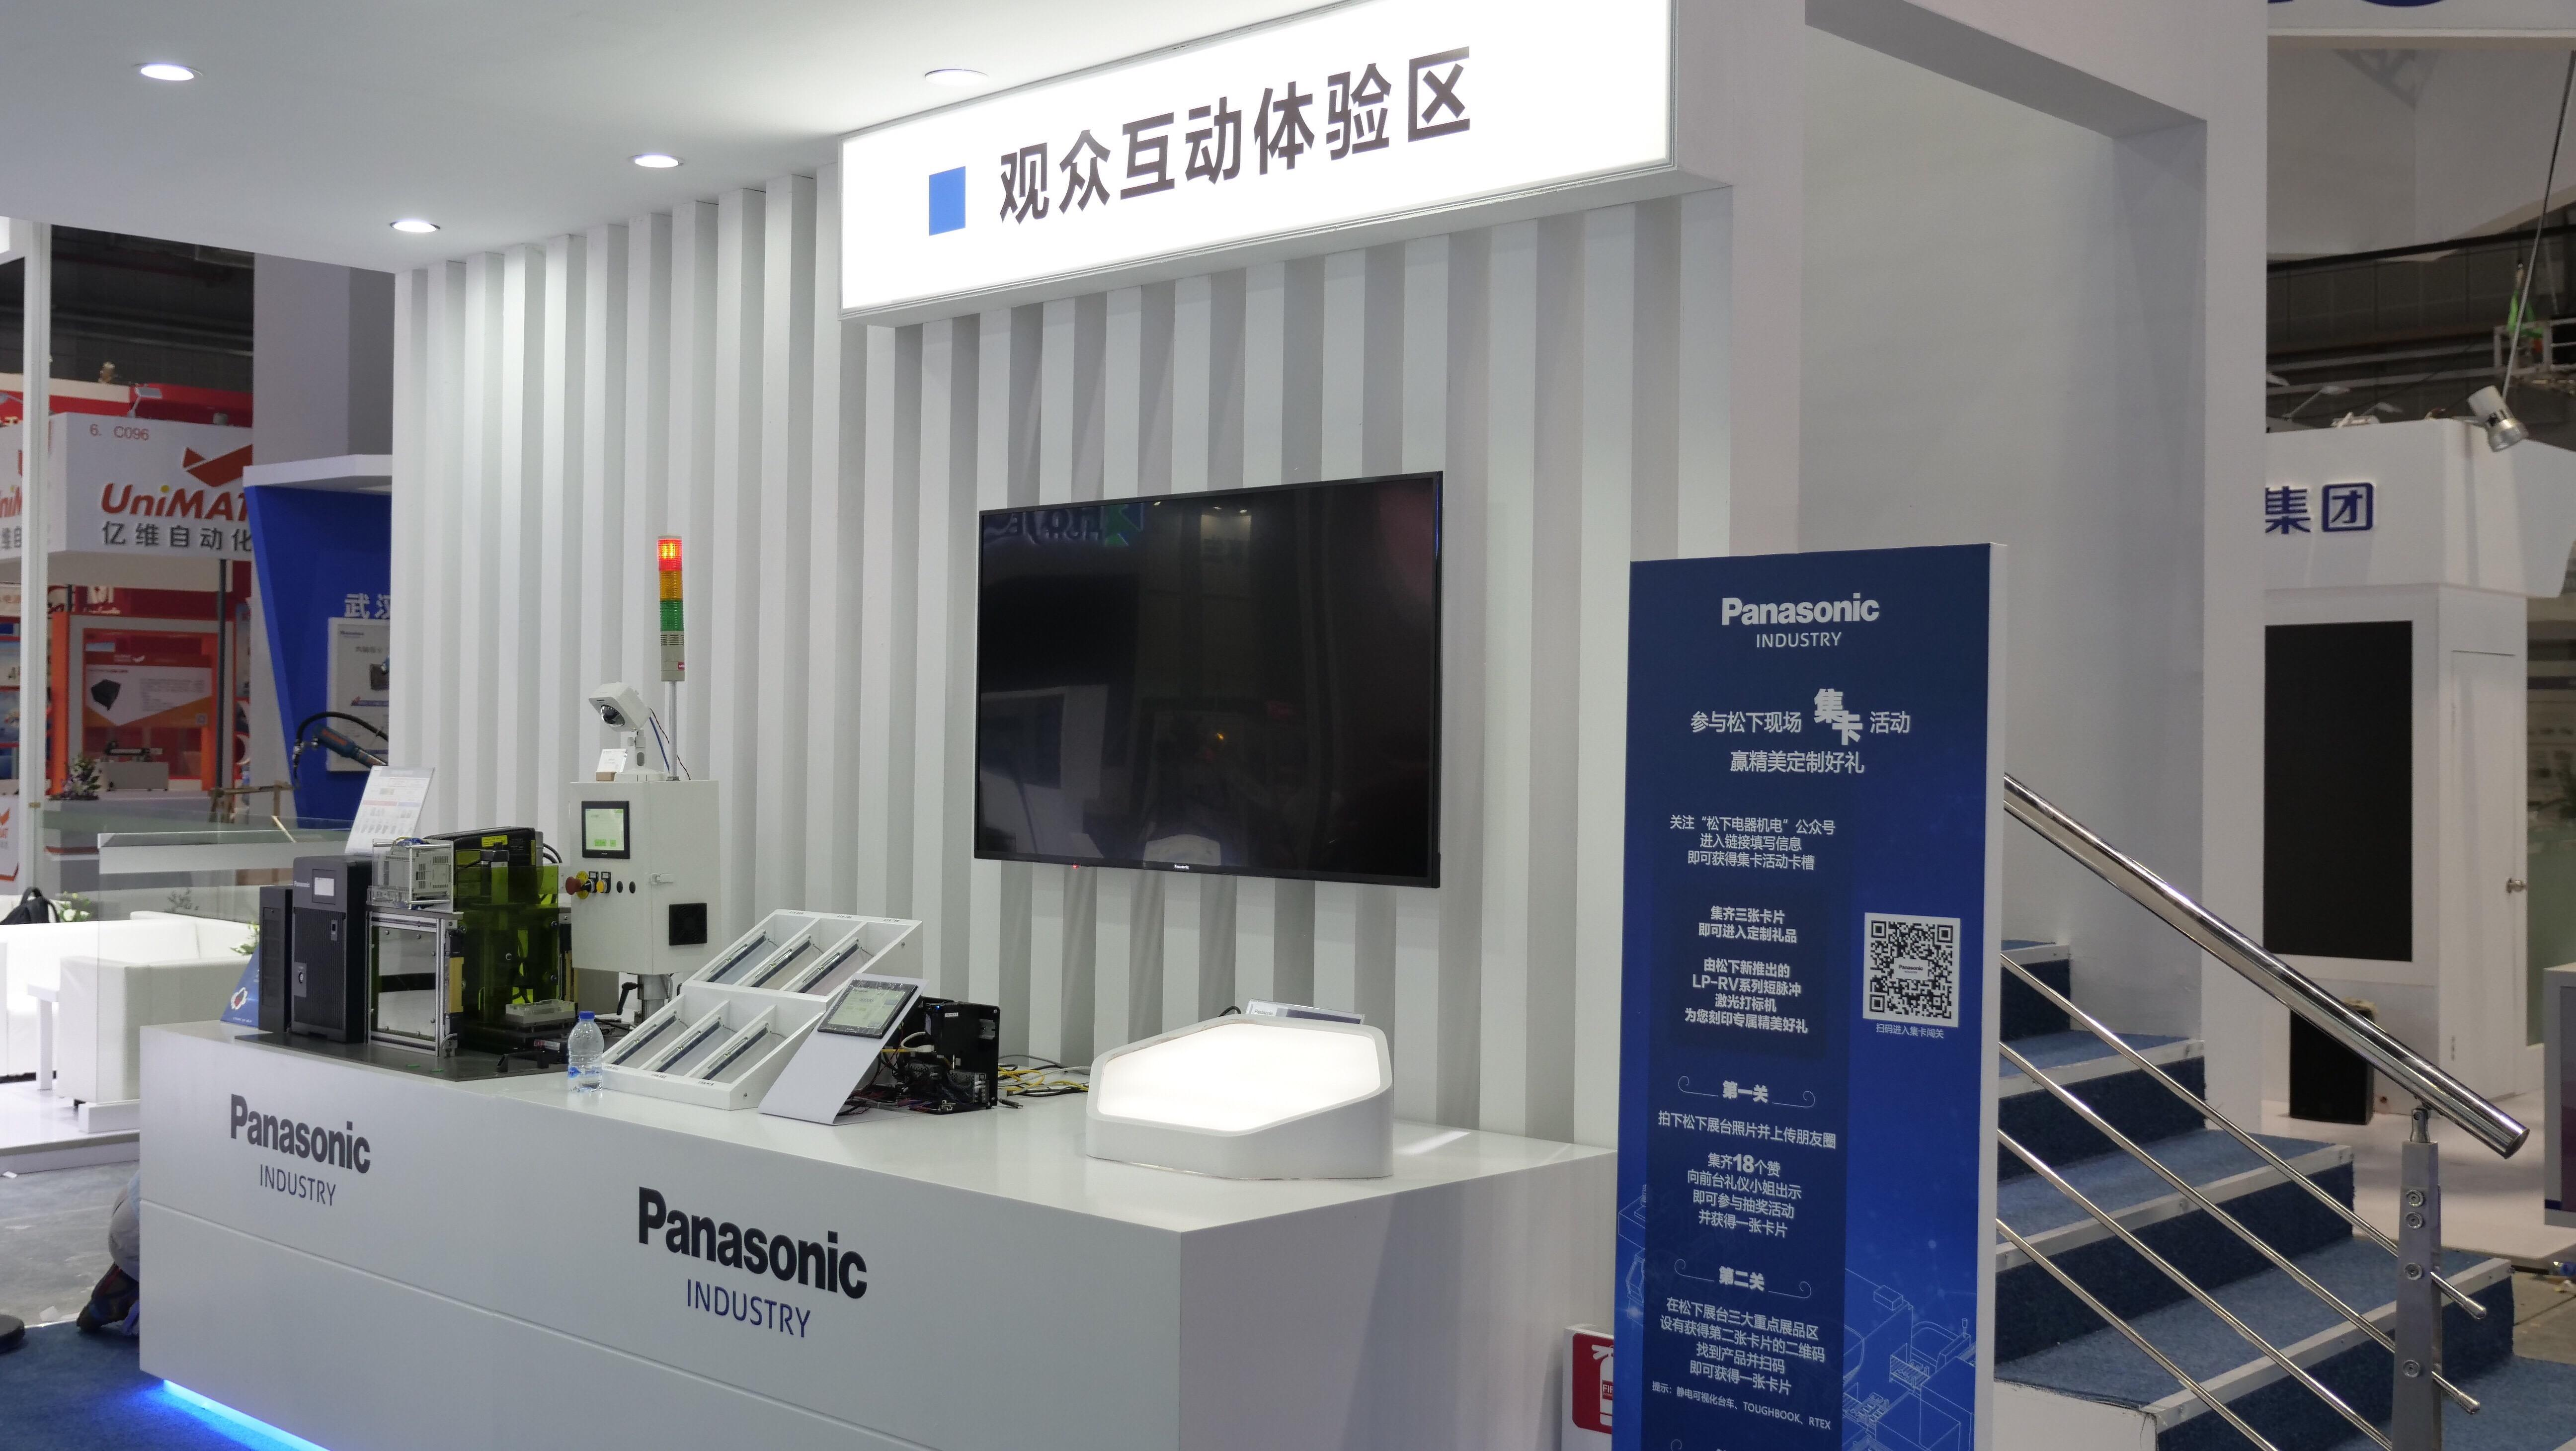 photo: Panasonic exhibited a wide variety of digital technology and products under the theme of